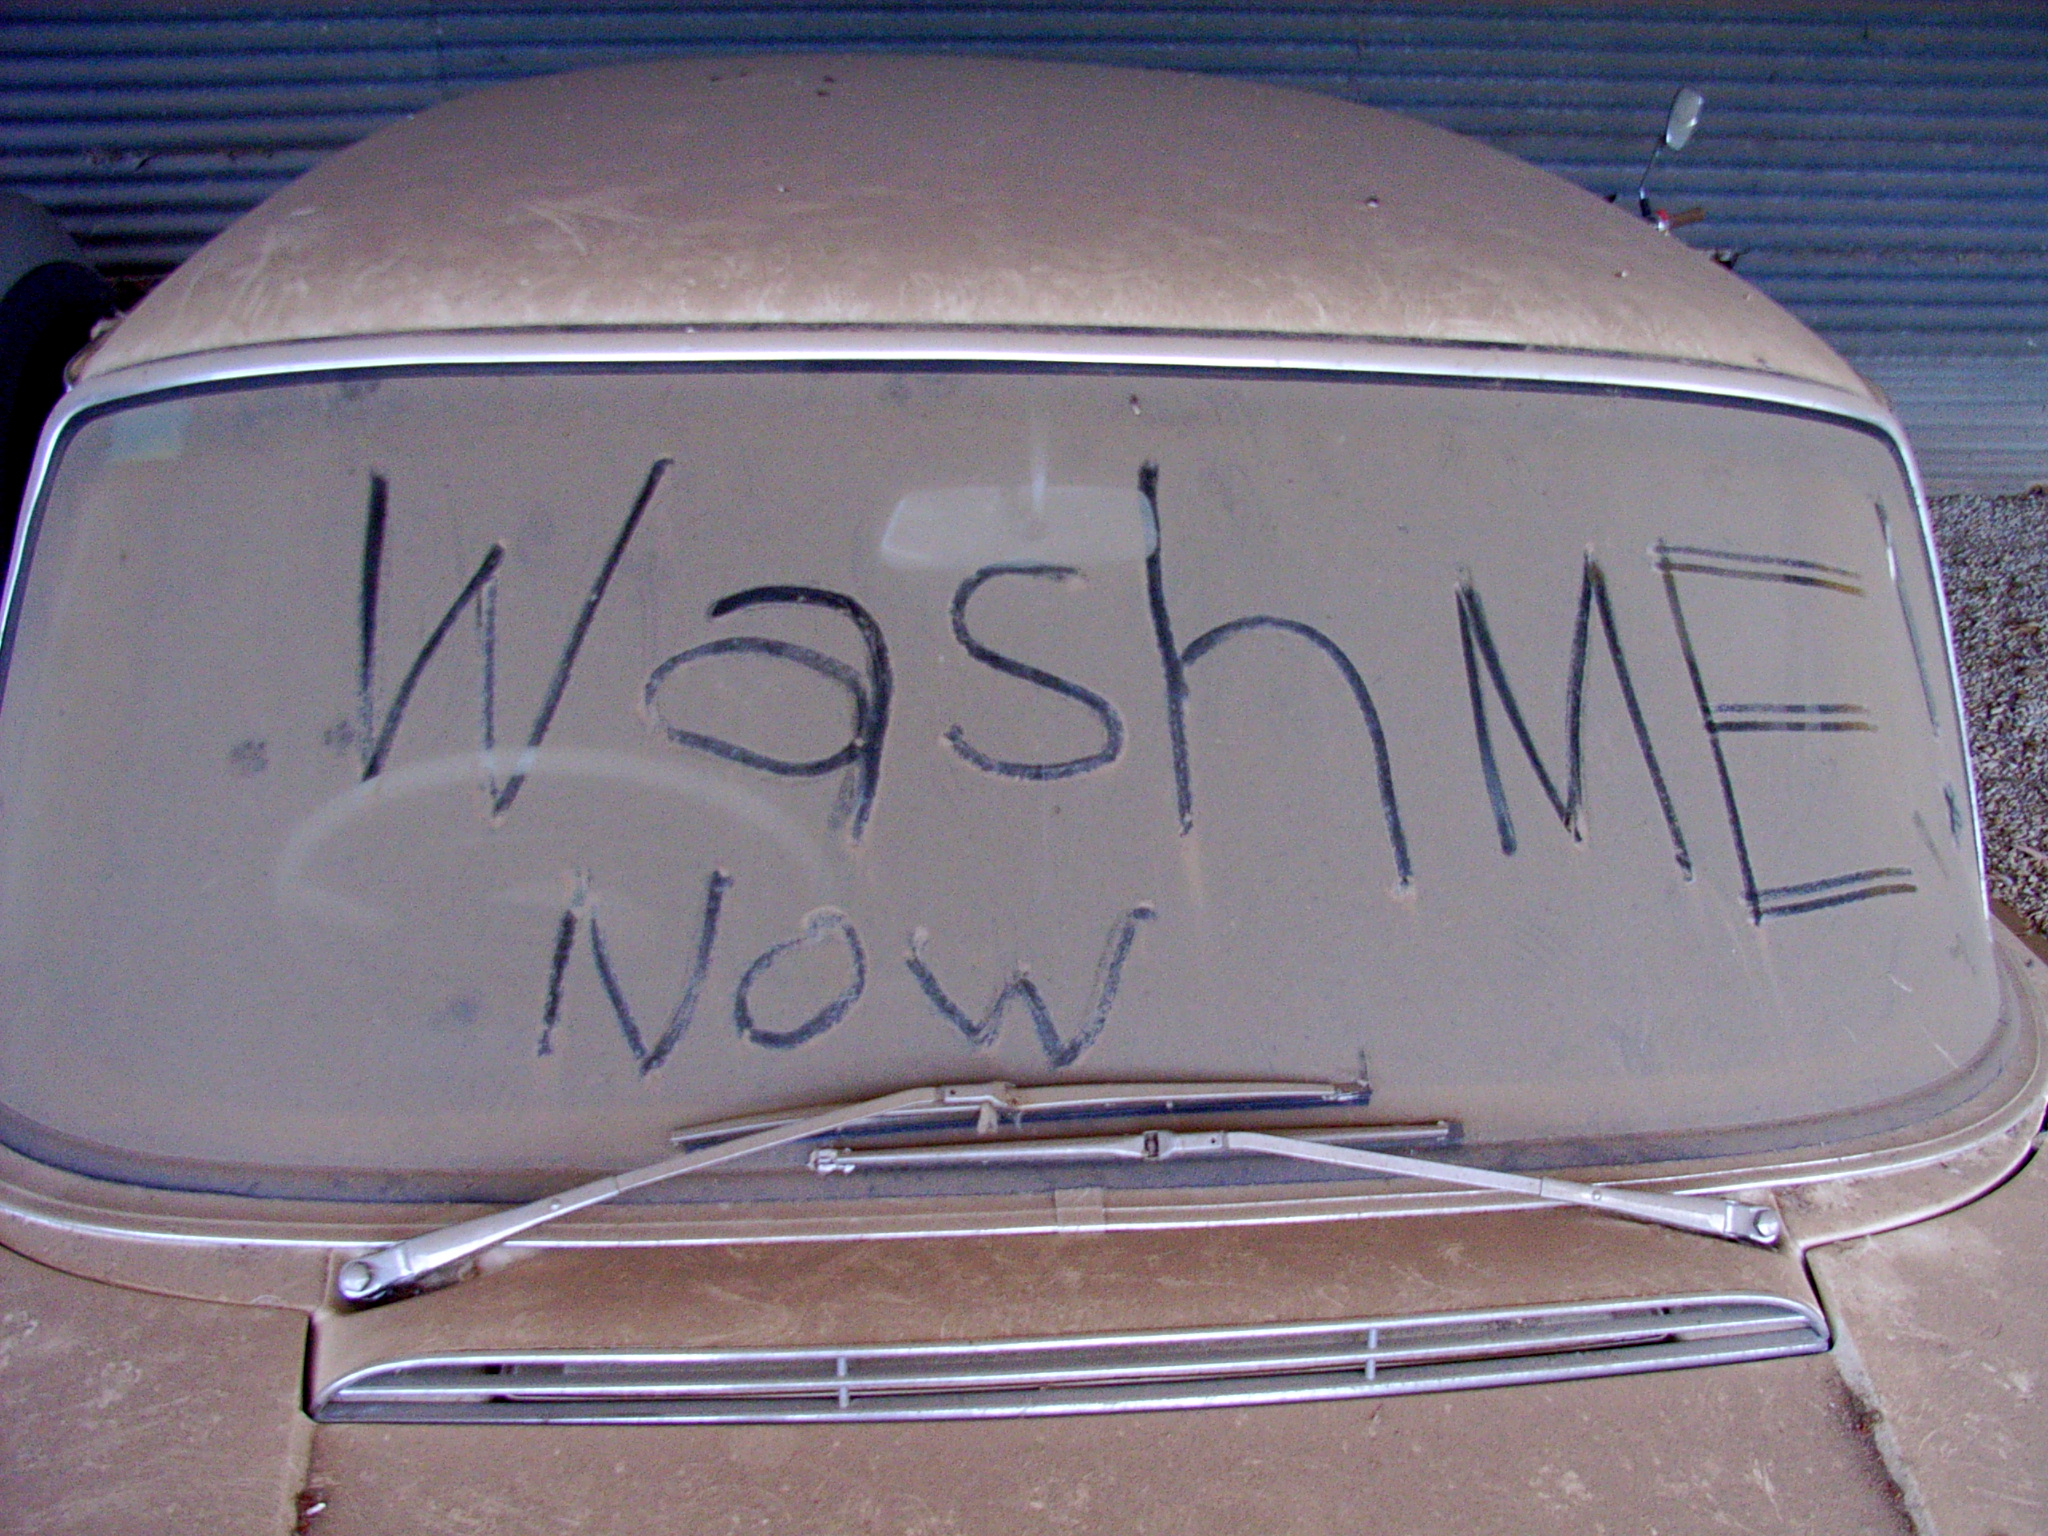 wash me widescreen - photo #17